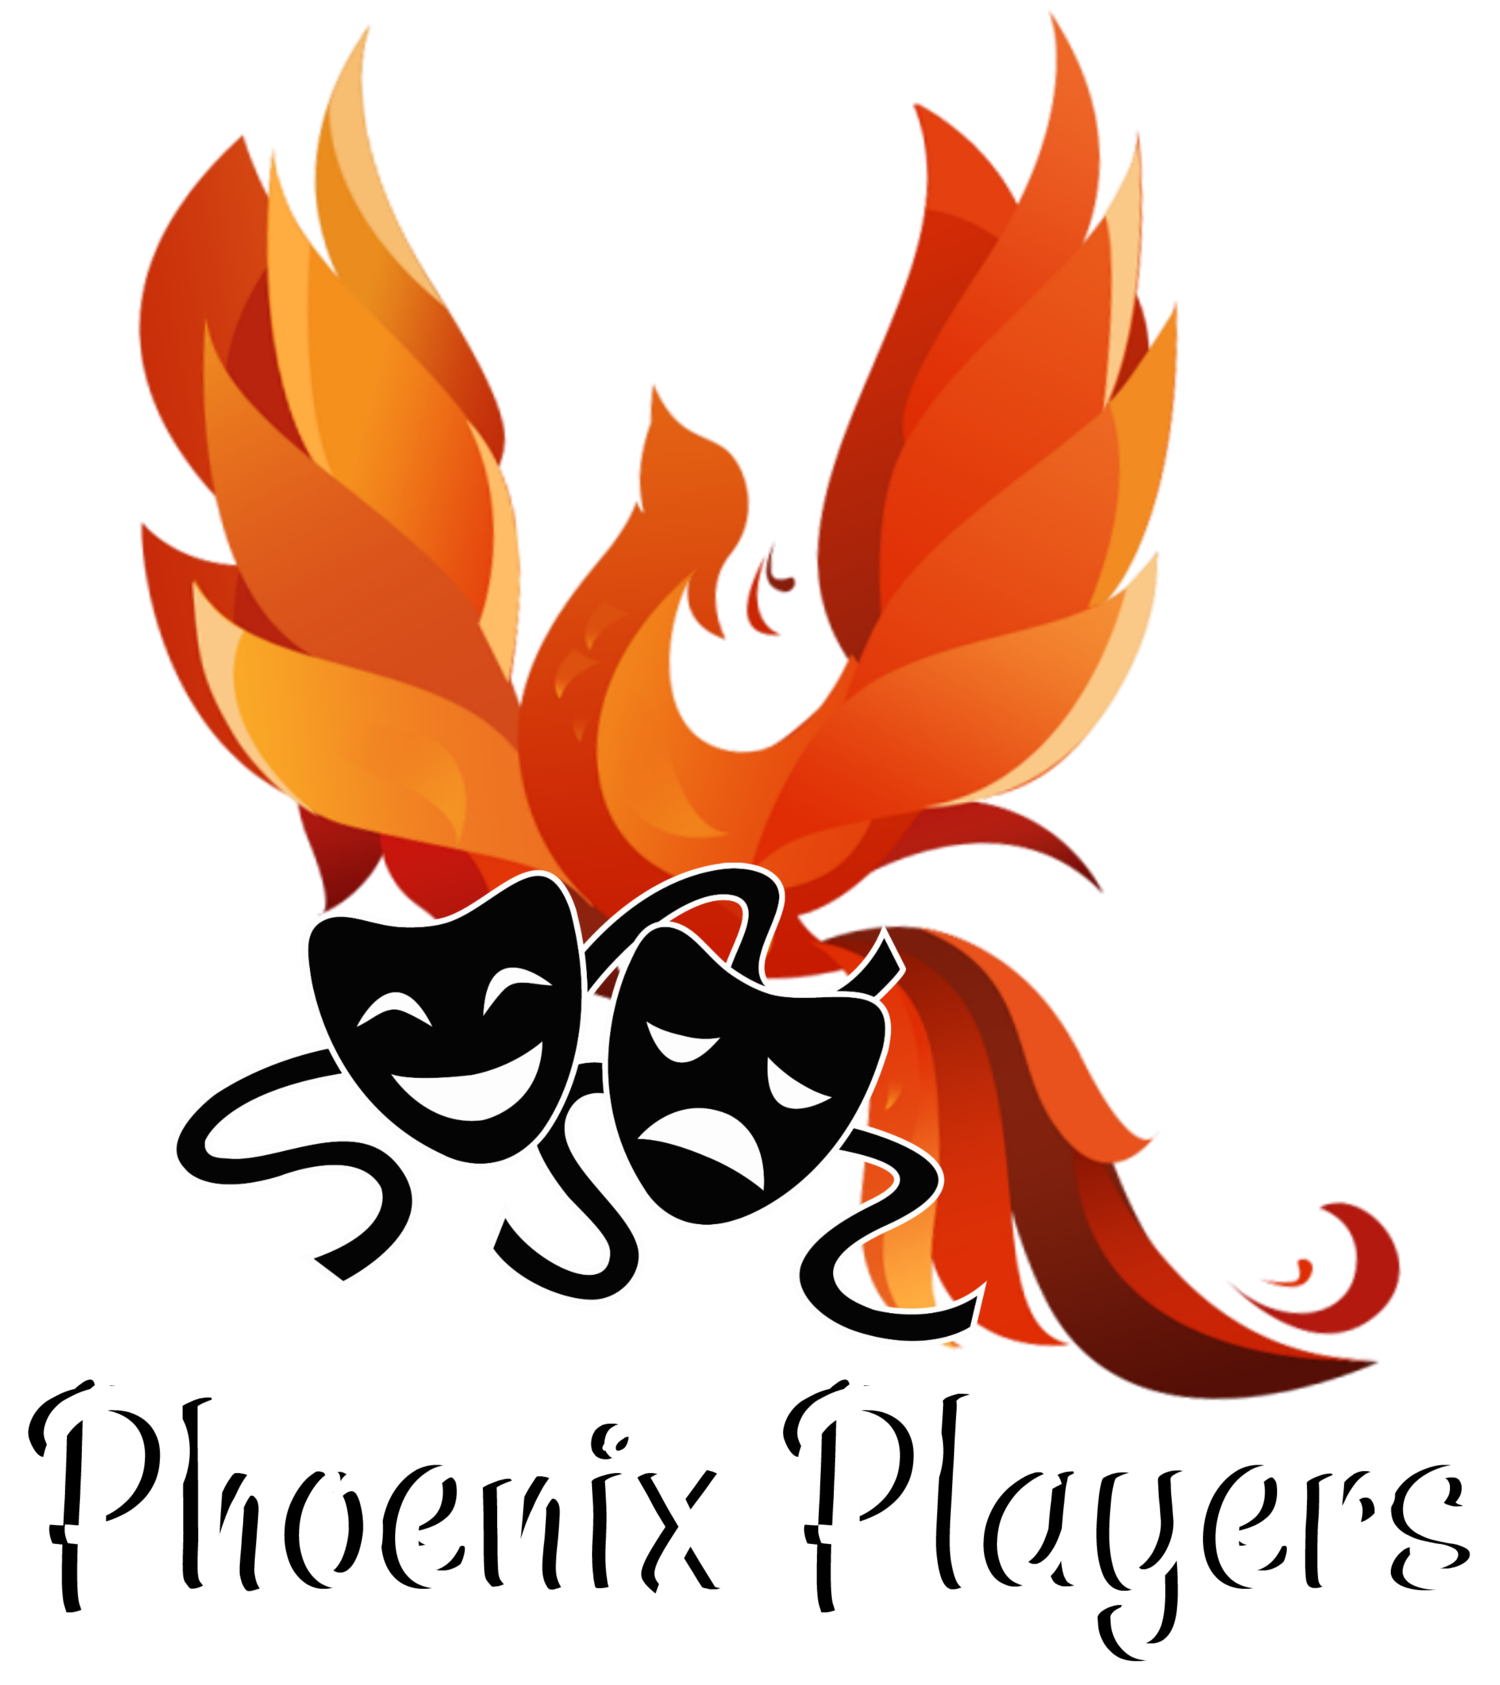 Phoenix Players, Inc.